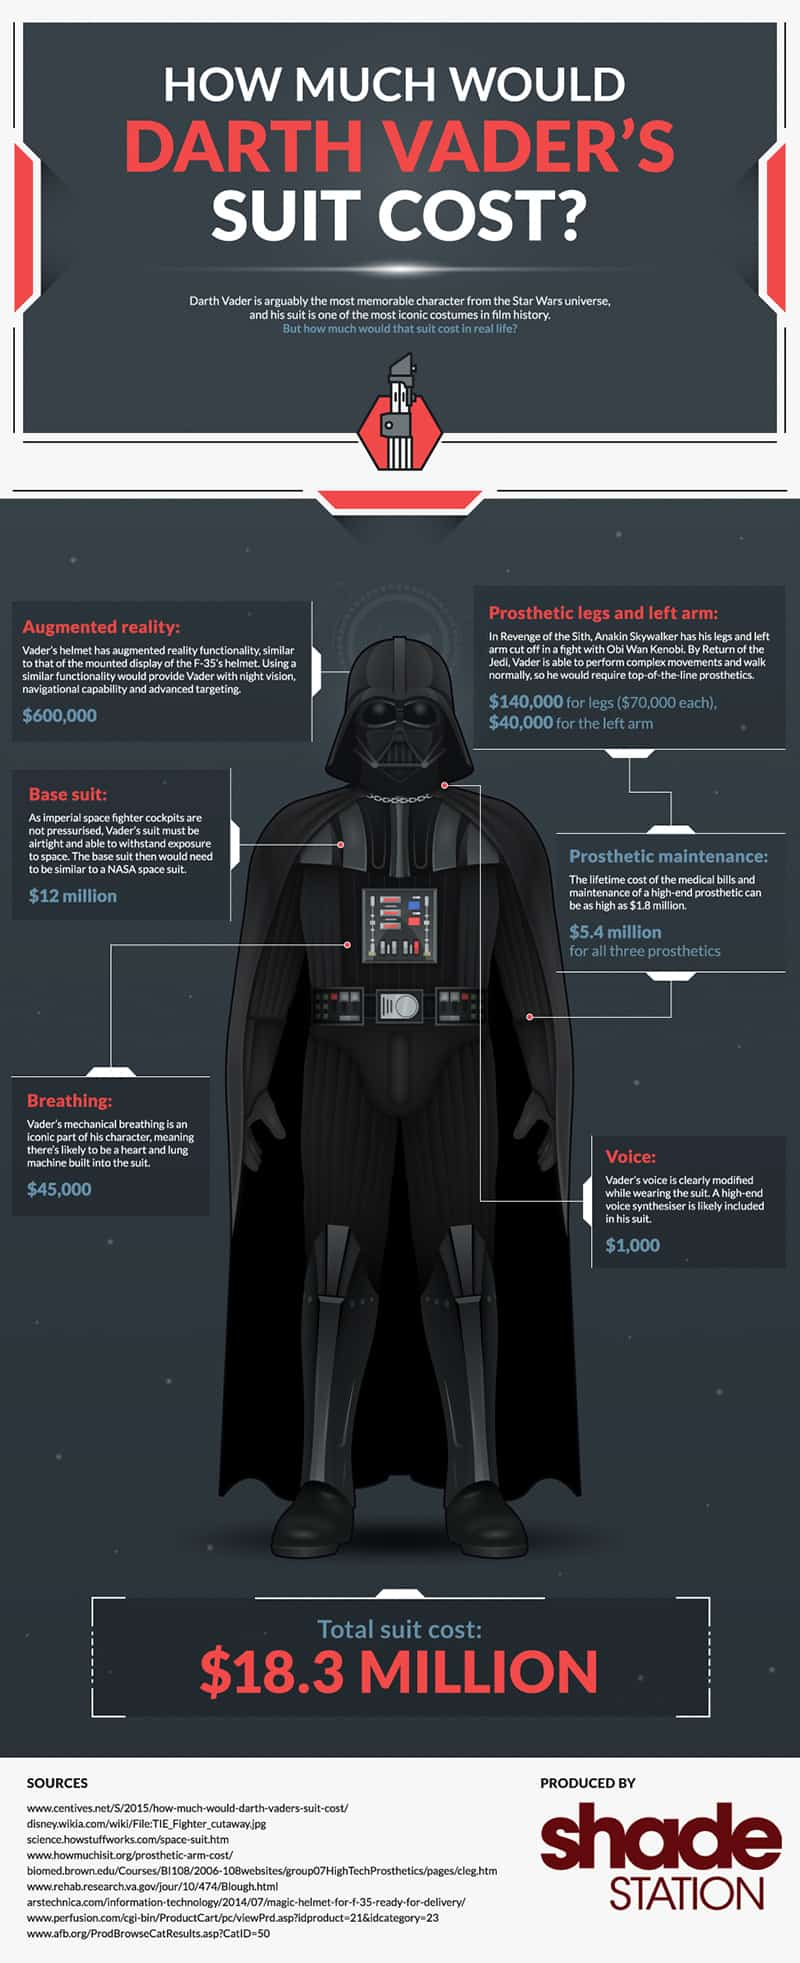 How Much Would Darth Vader's Suit Cost Infographic